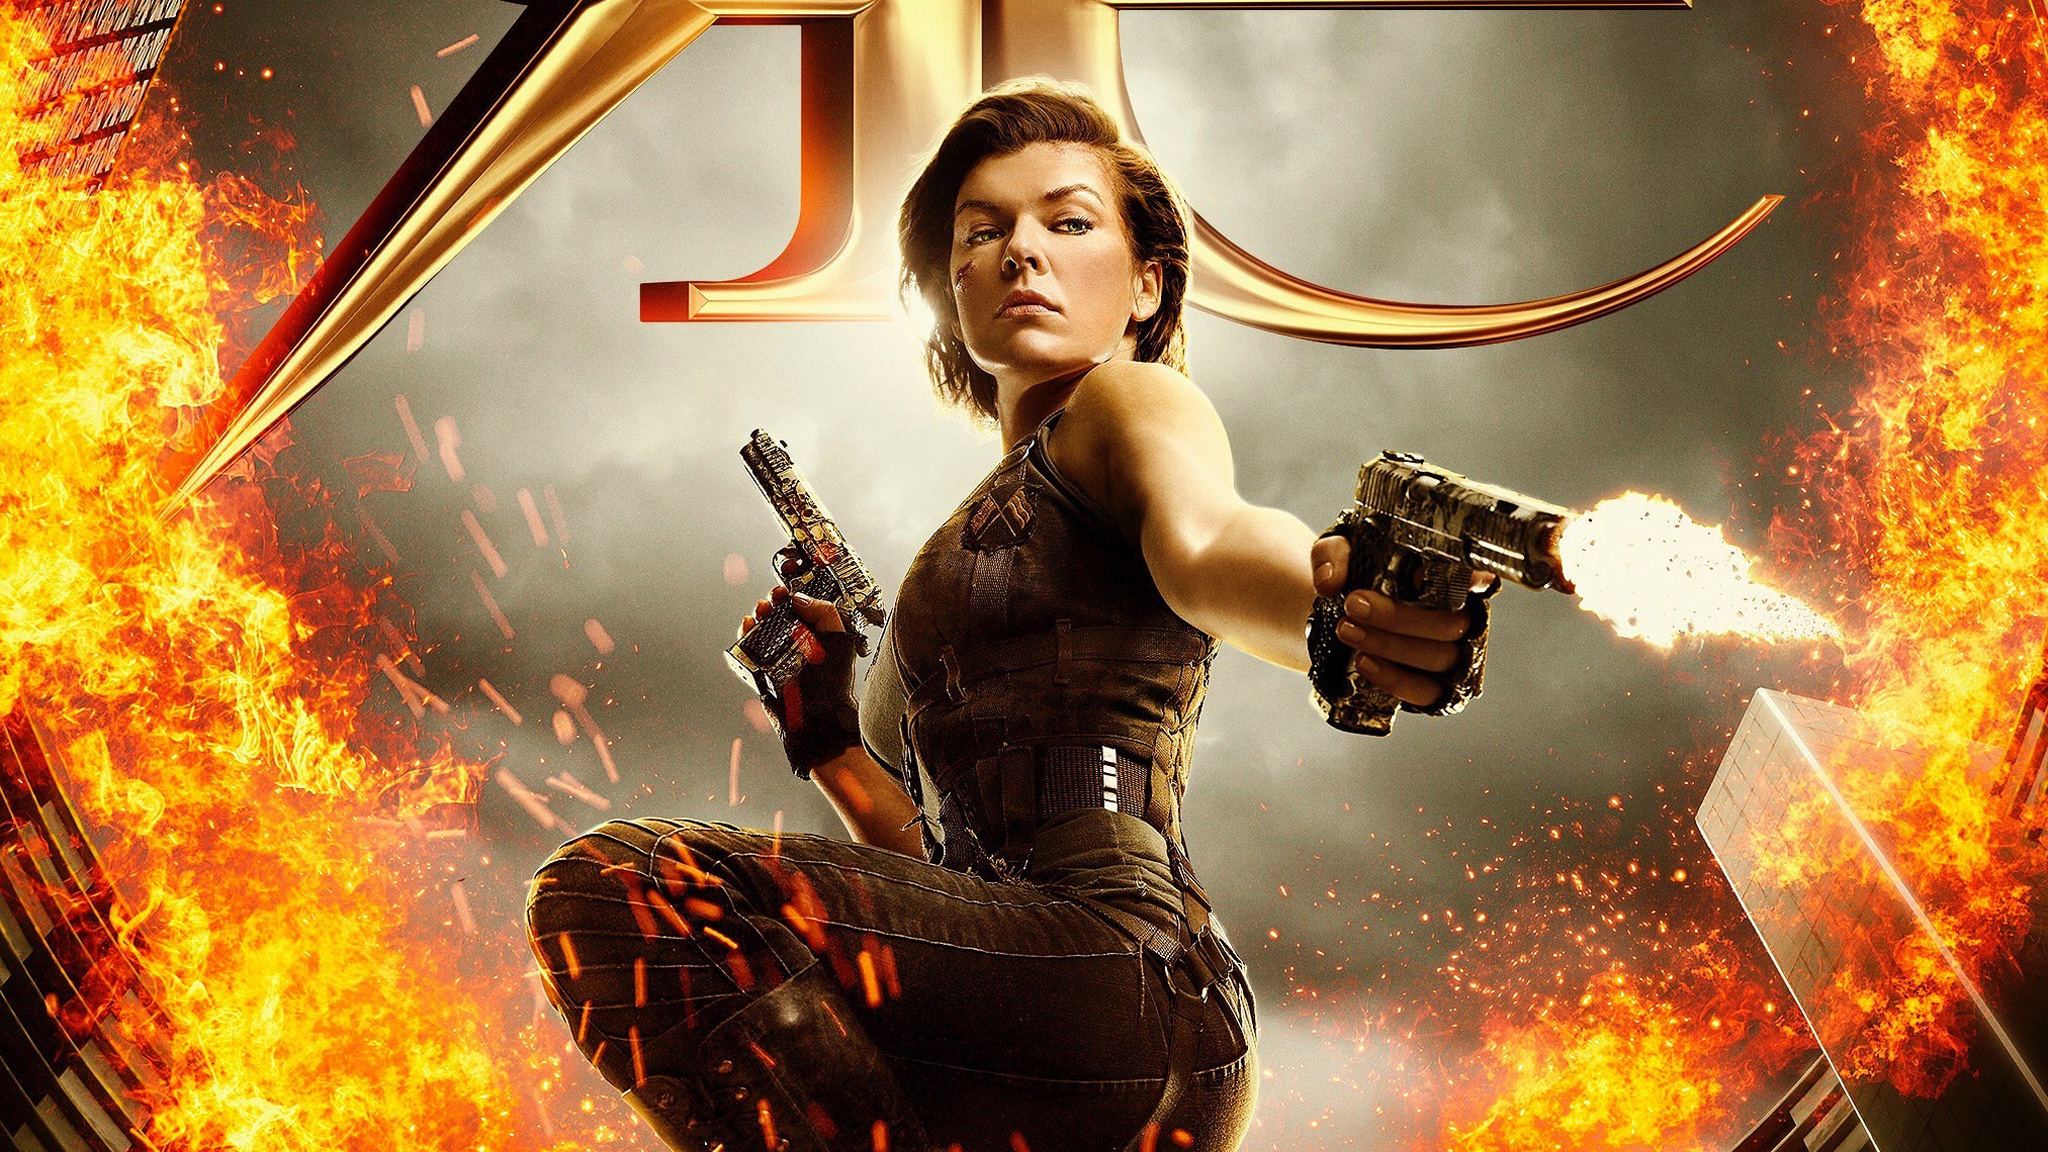 784884 byte size of Resident Evil 6 The Final Chapter HD.jpg